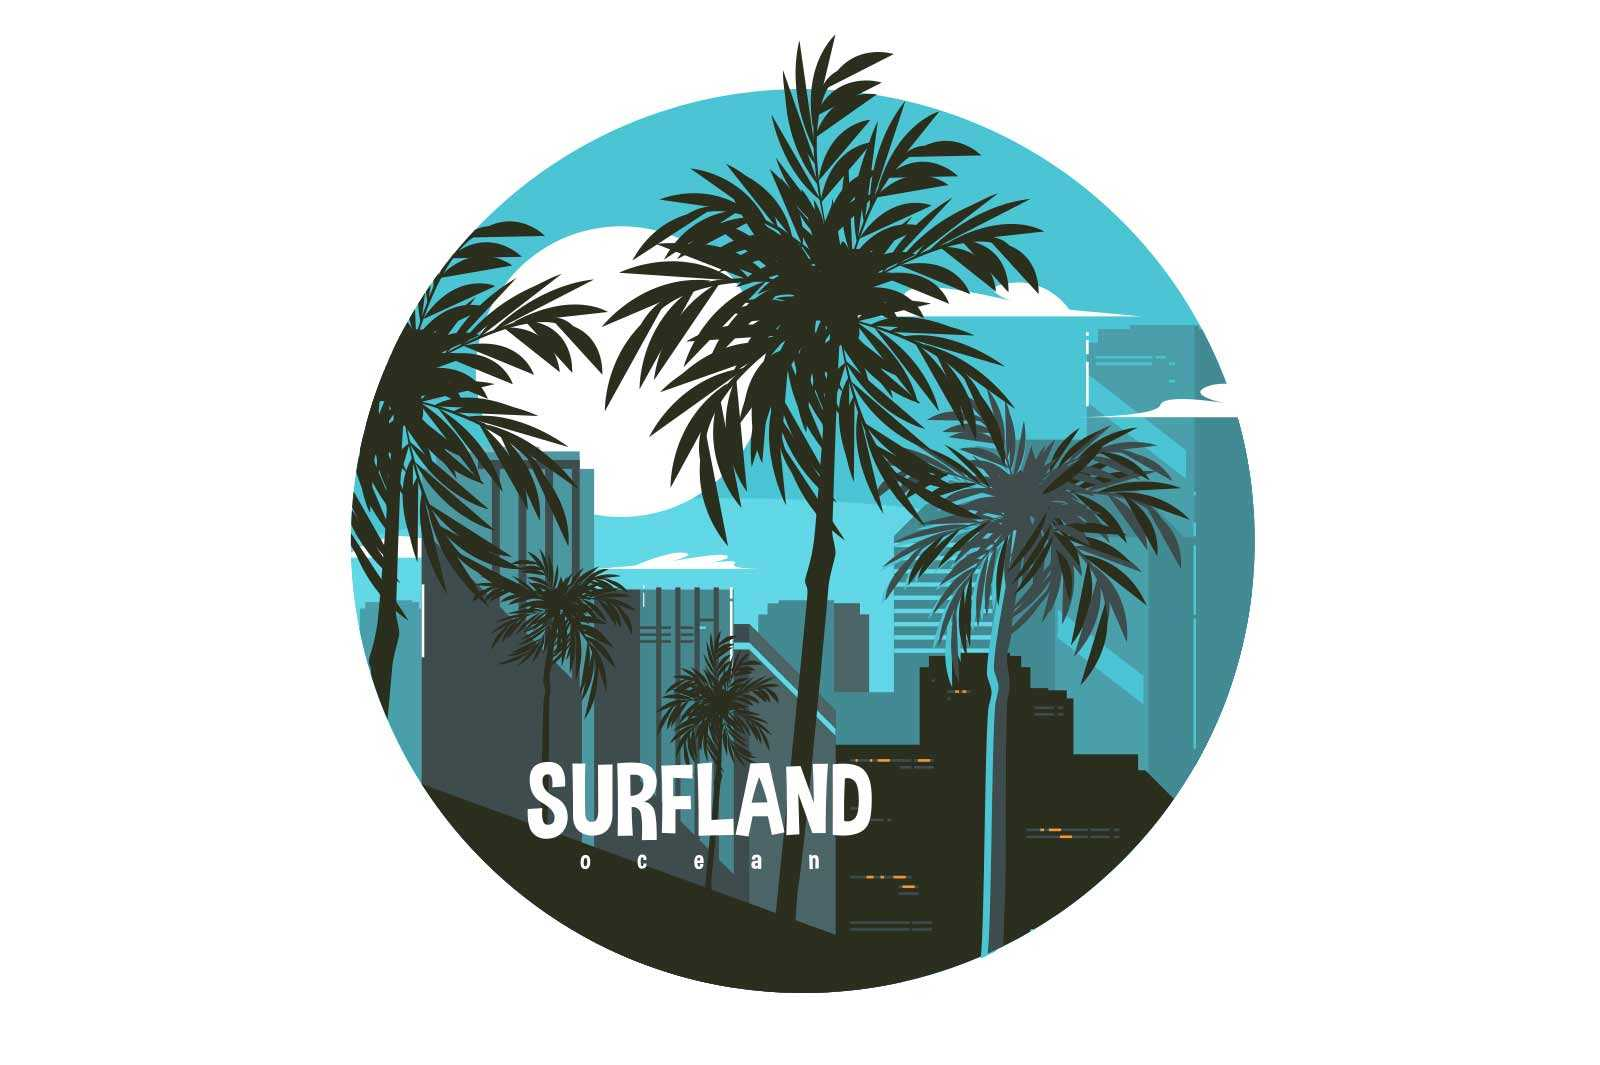 View of night city vector illustration. Full moon and palm trees flat style. Surfland ocean inscription. Summer and vacation concept. Isolated on white background